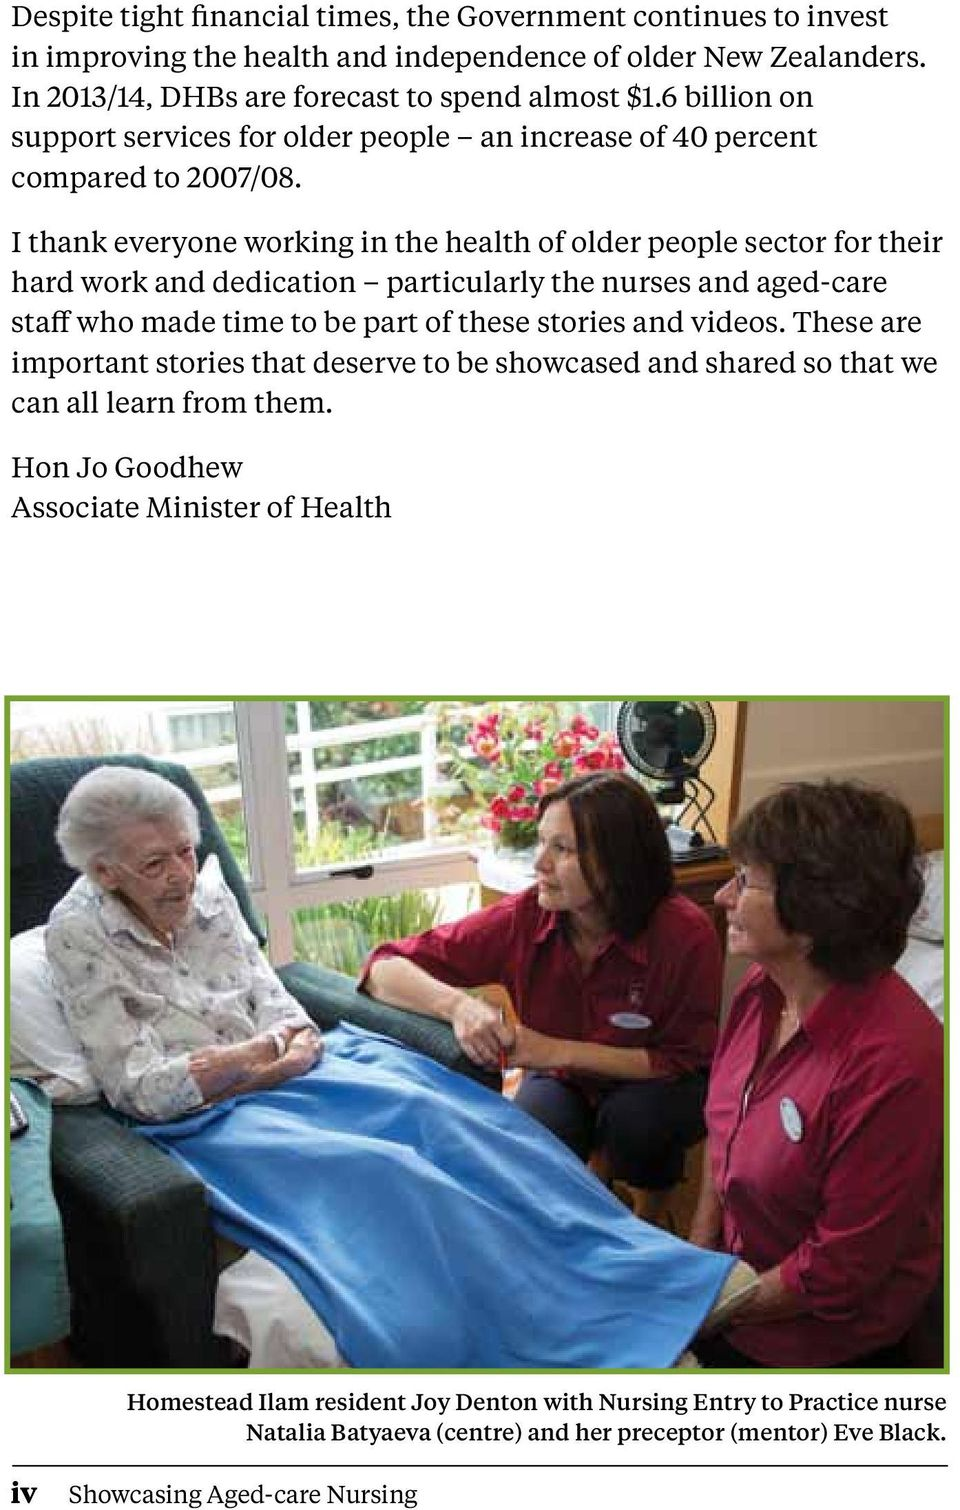 I thank everyone working in the health of older people sector for their hard work and dedication particularly the nurses and aged-care staff who made time to be part of these stories and videos.